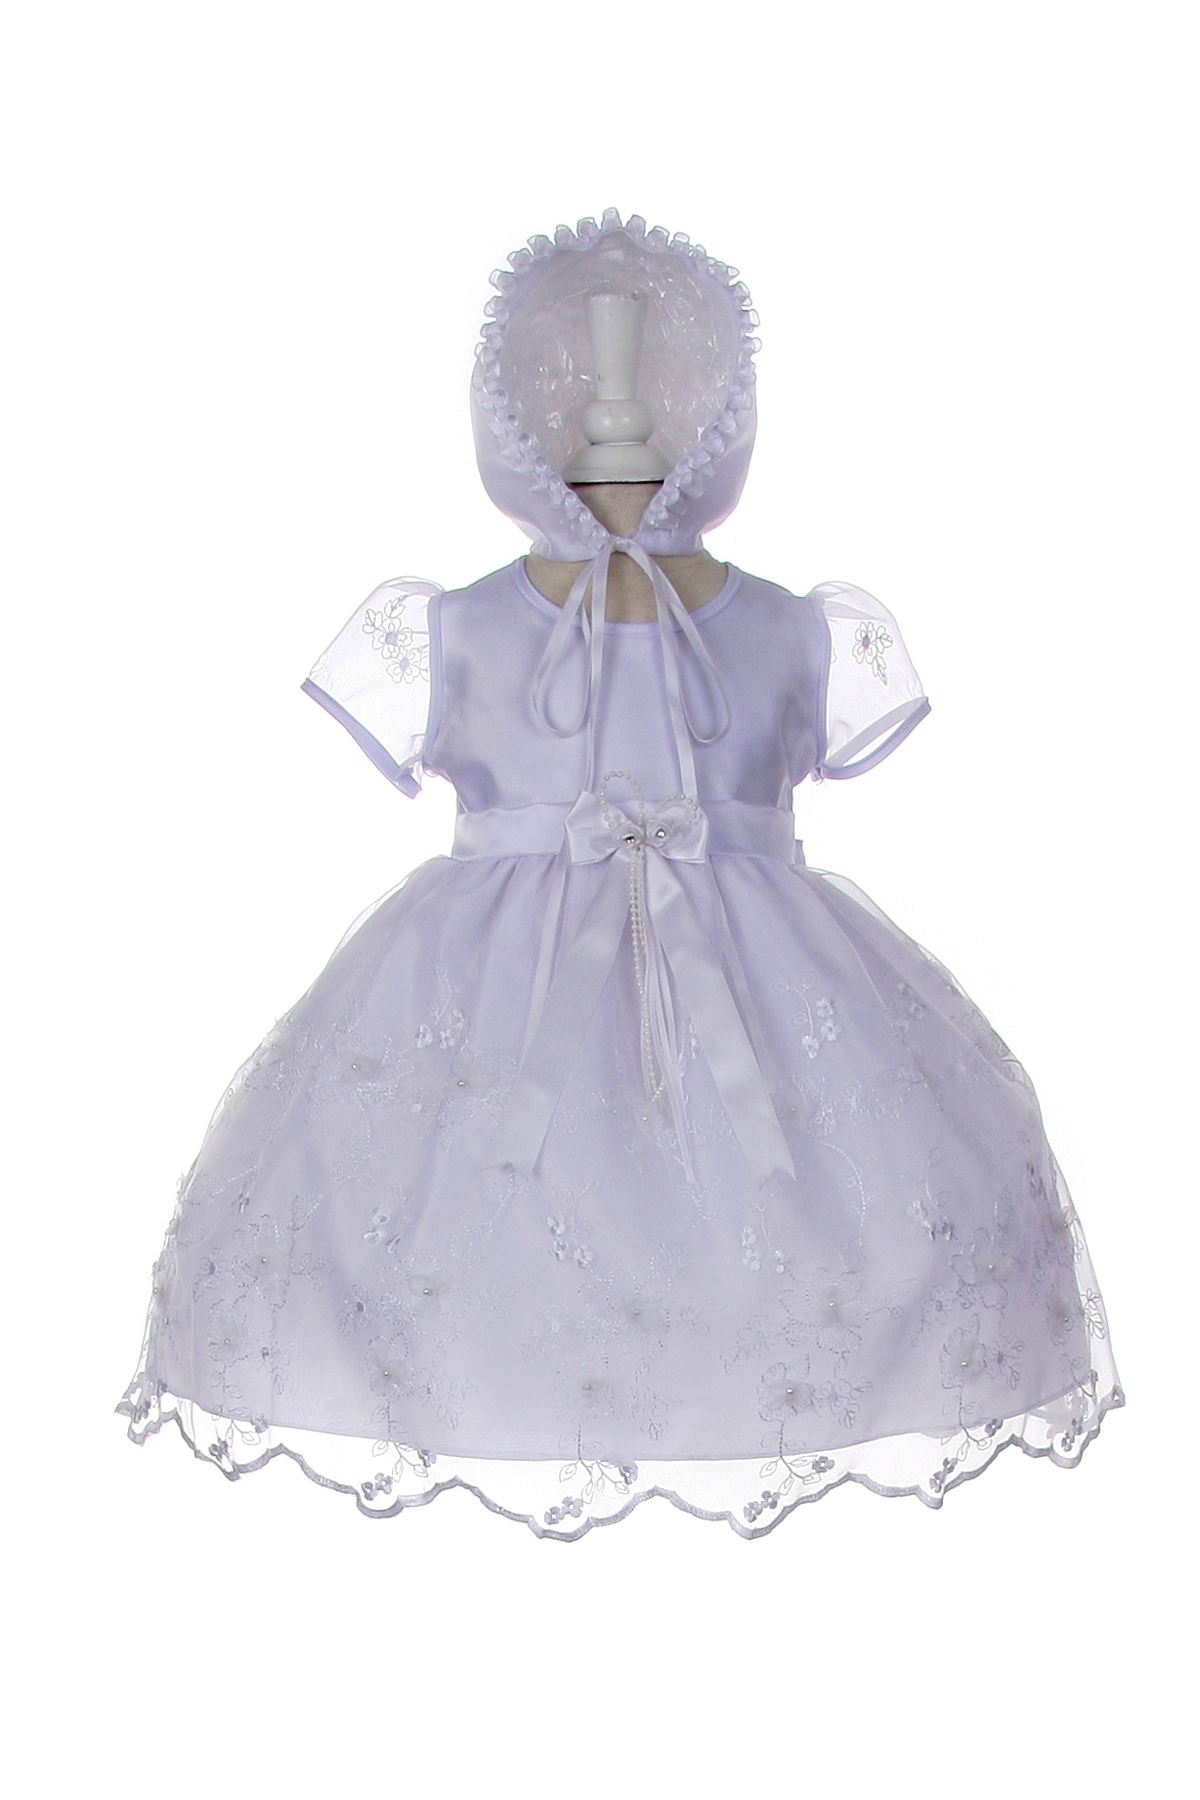 Christening Gowns Baptismal Gowns Christening Gown